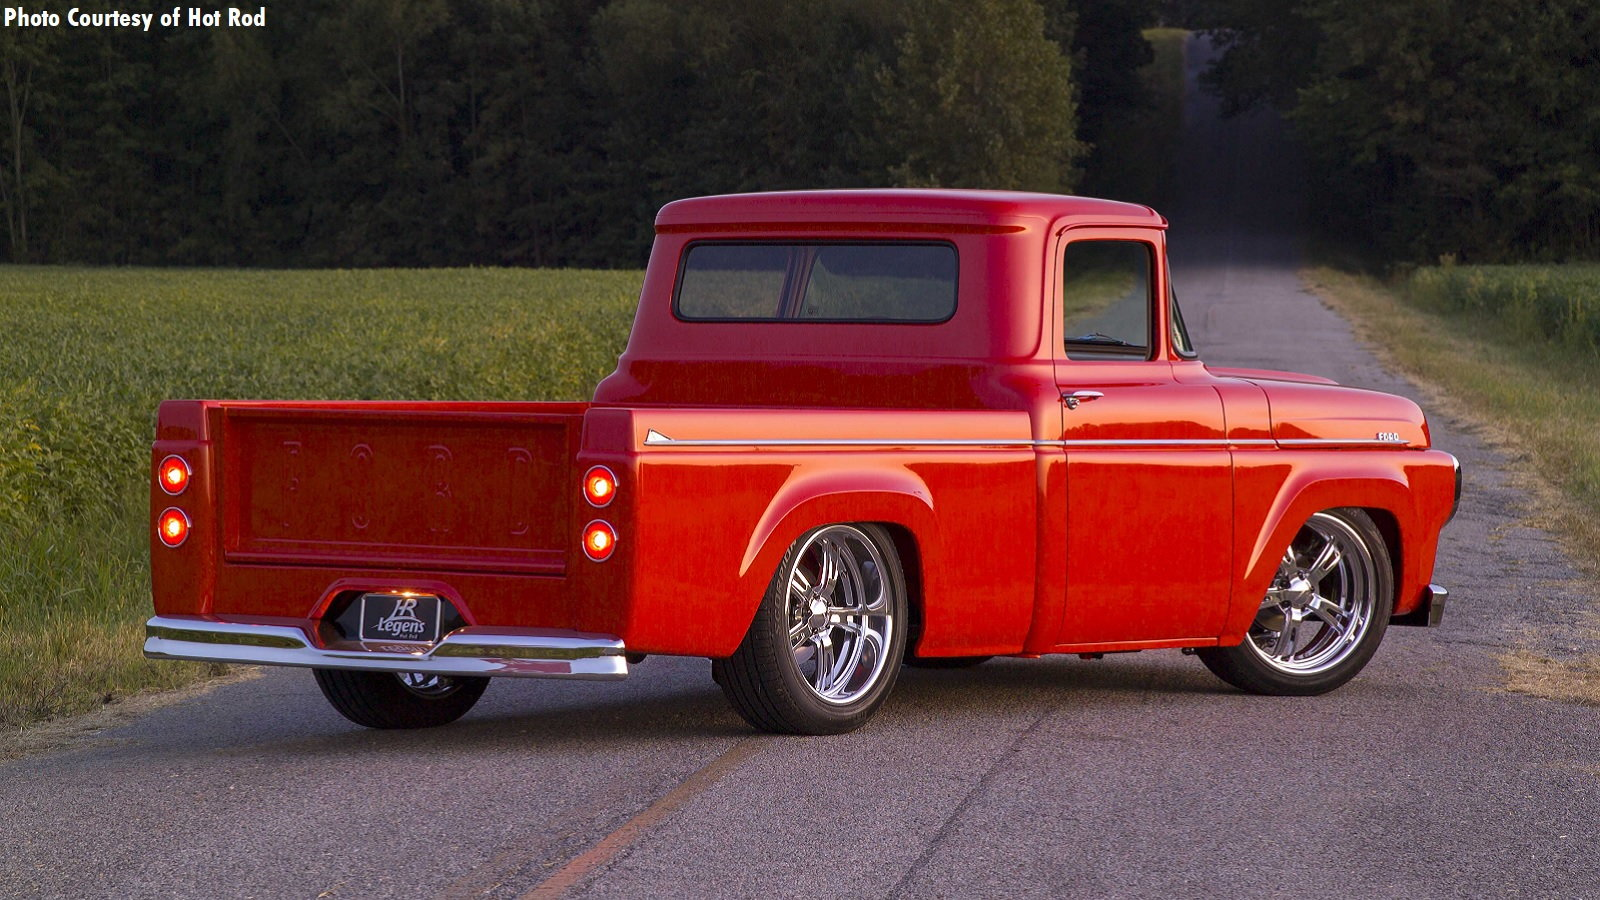 F-100 is Cardinal Red but Has a Coyote Under the Hood